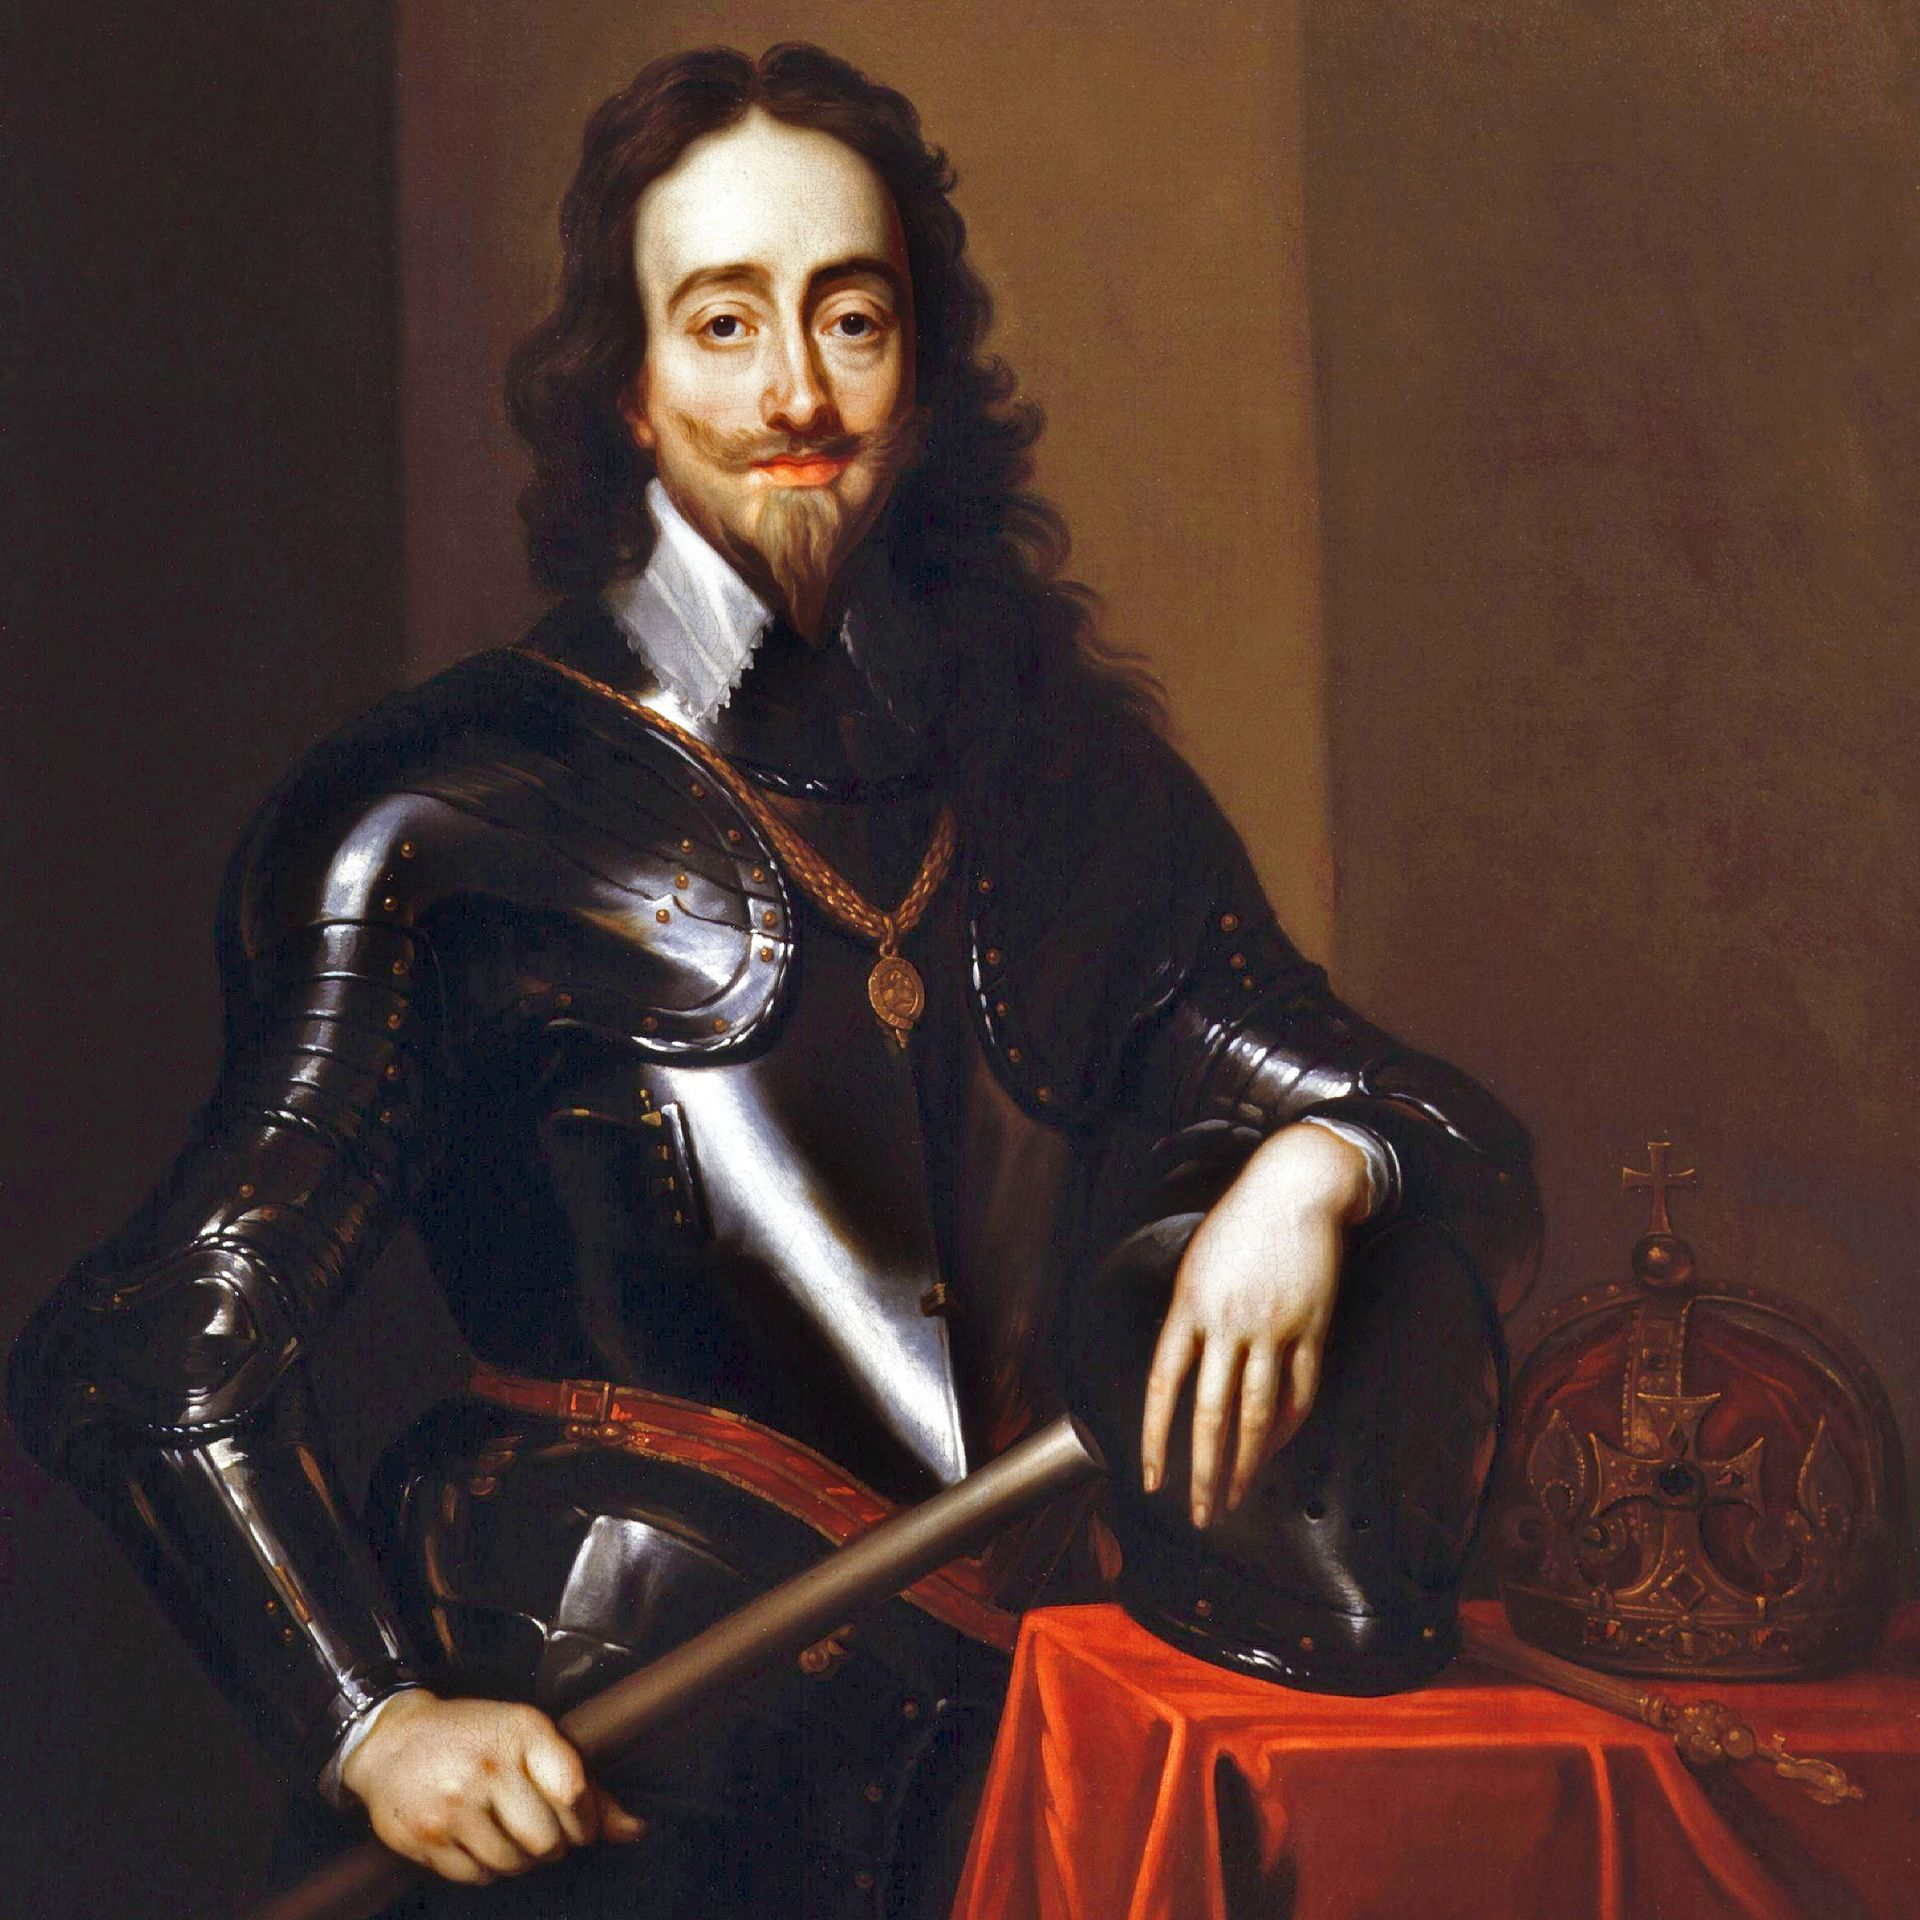 When was Charles I executed?